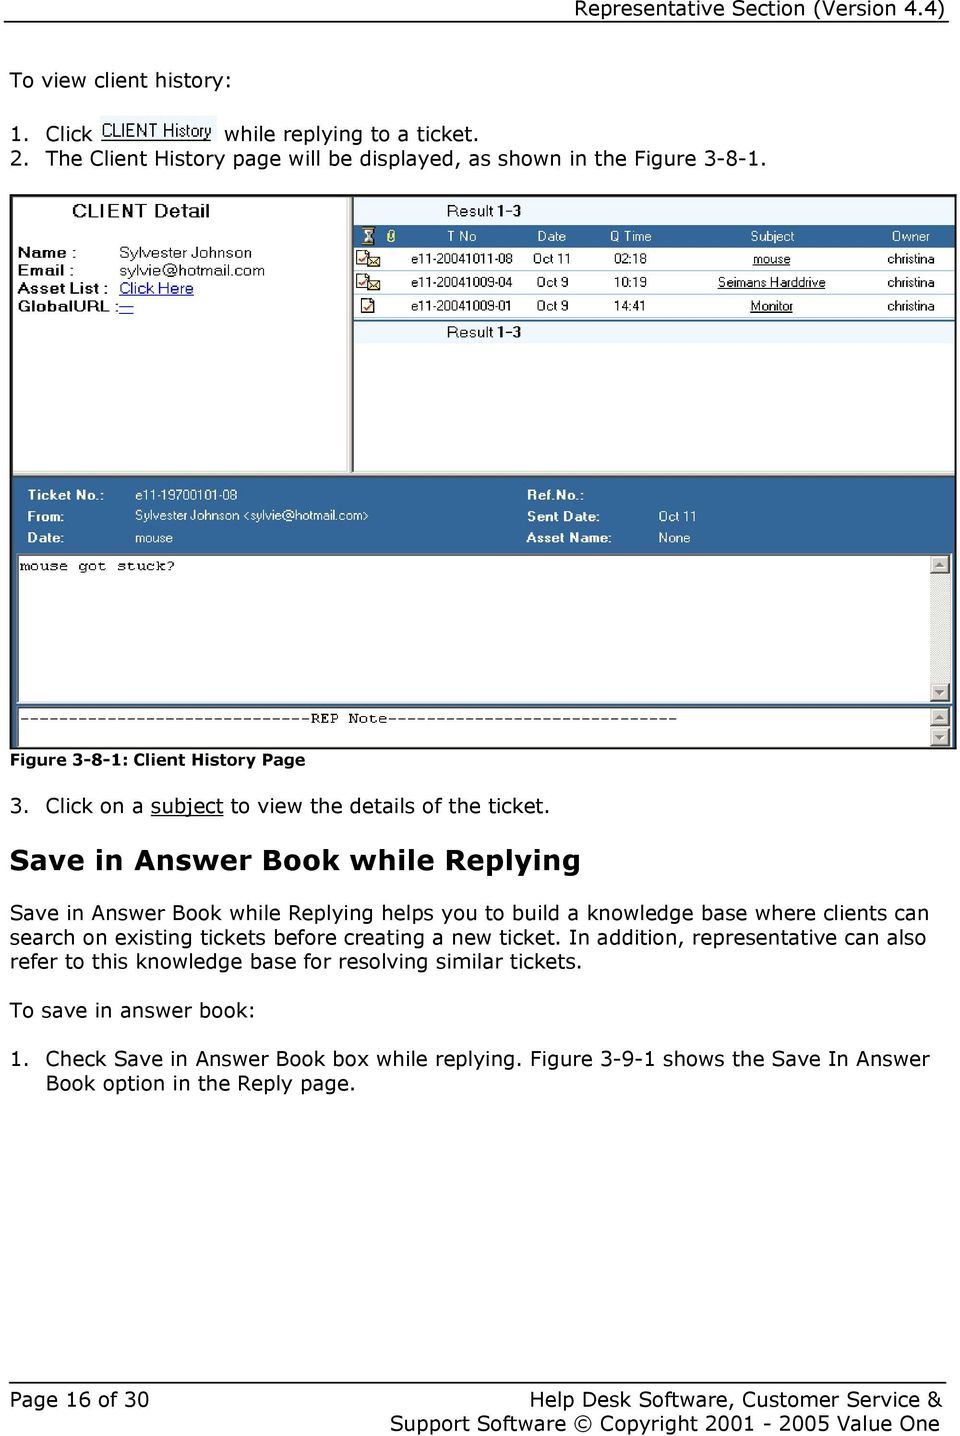 Save in Answer Book while Replying Save in Answer Book while Replying helps you to build a knowledge base where clients can search on existing tickets before